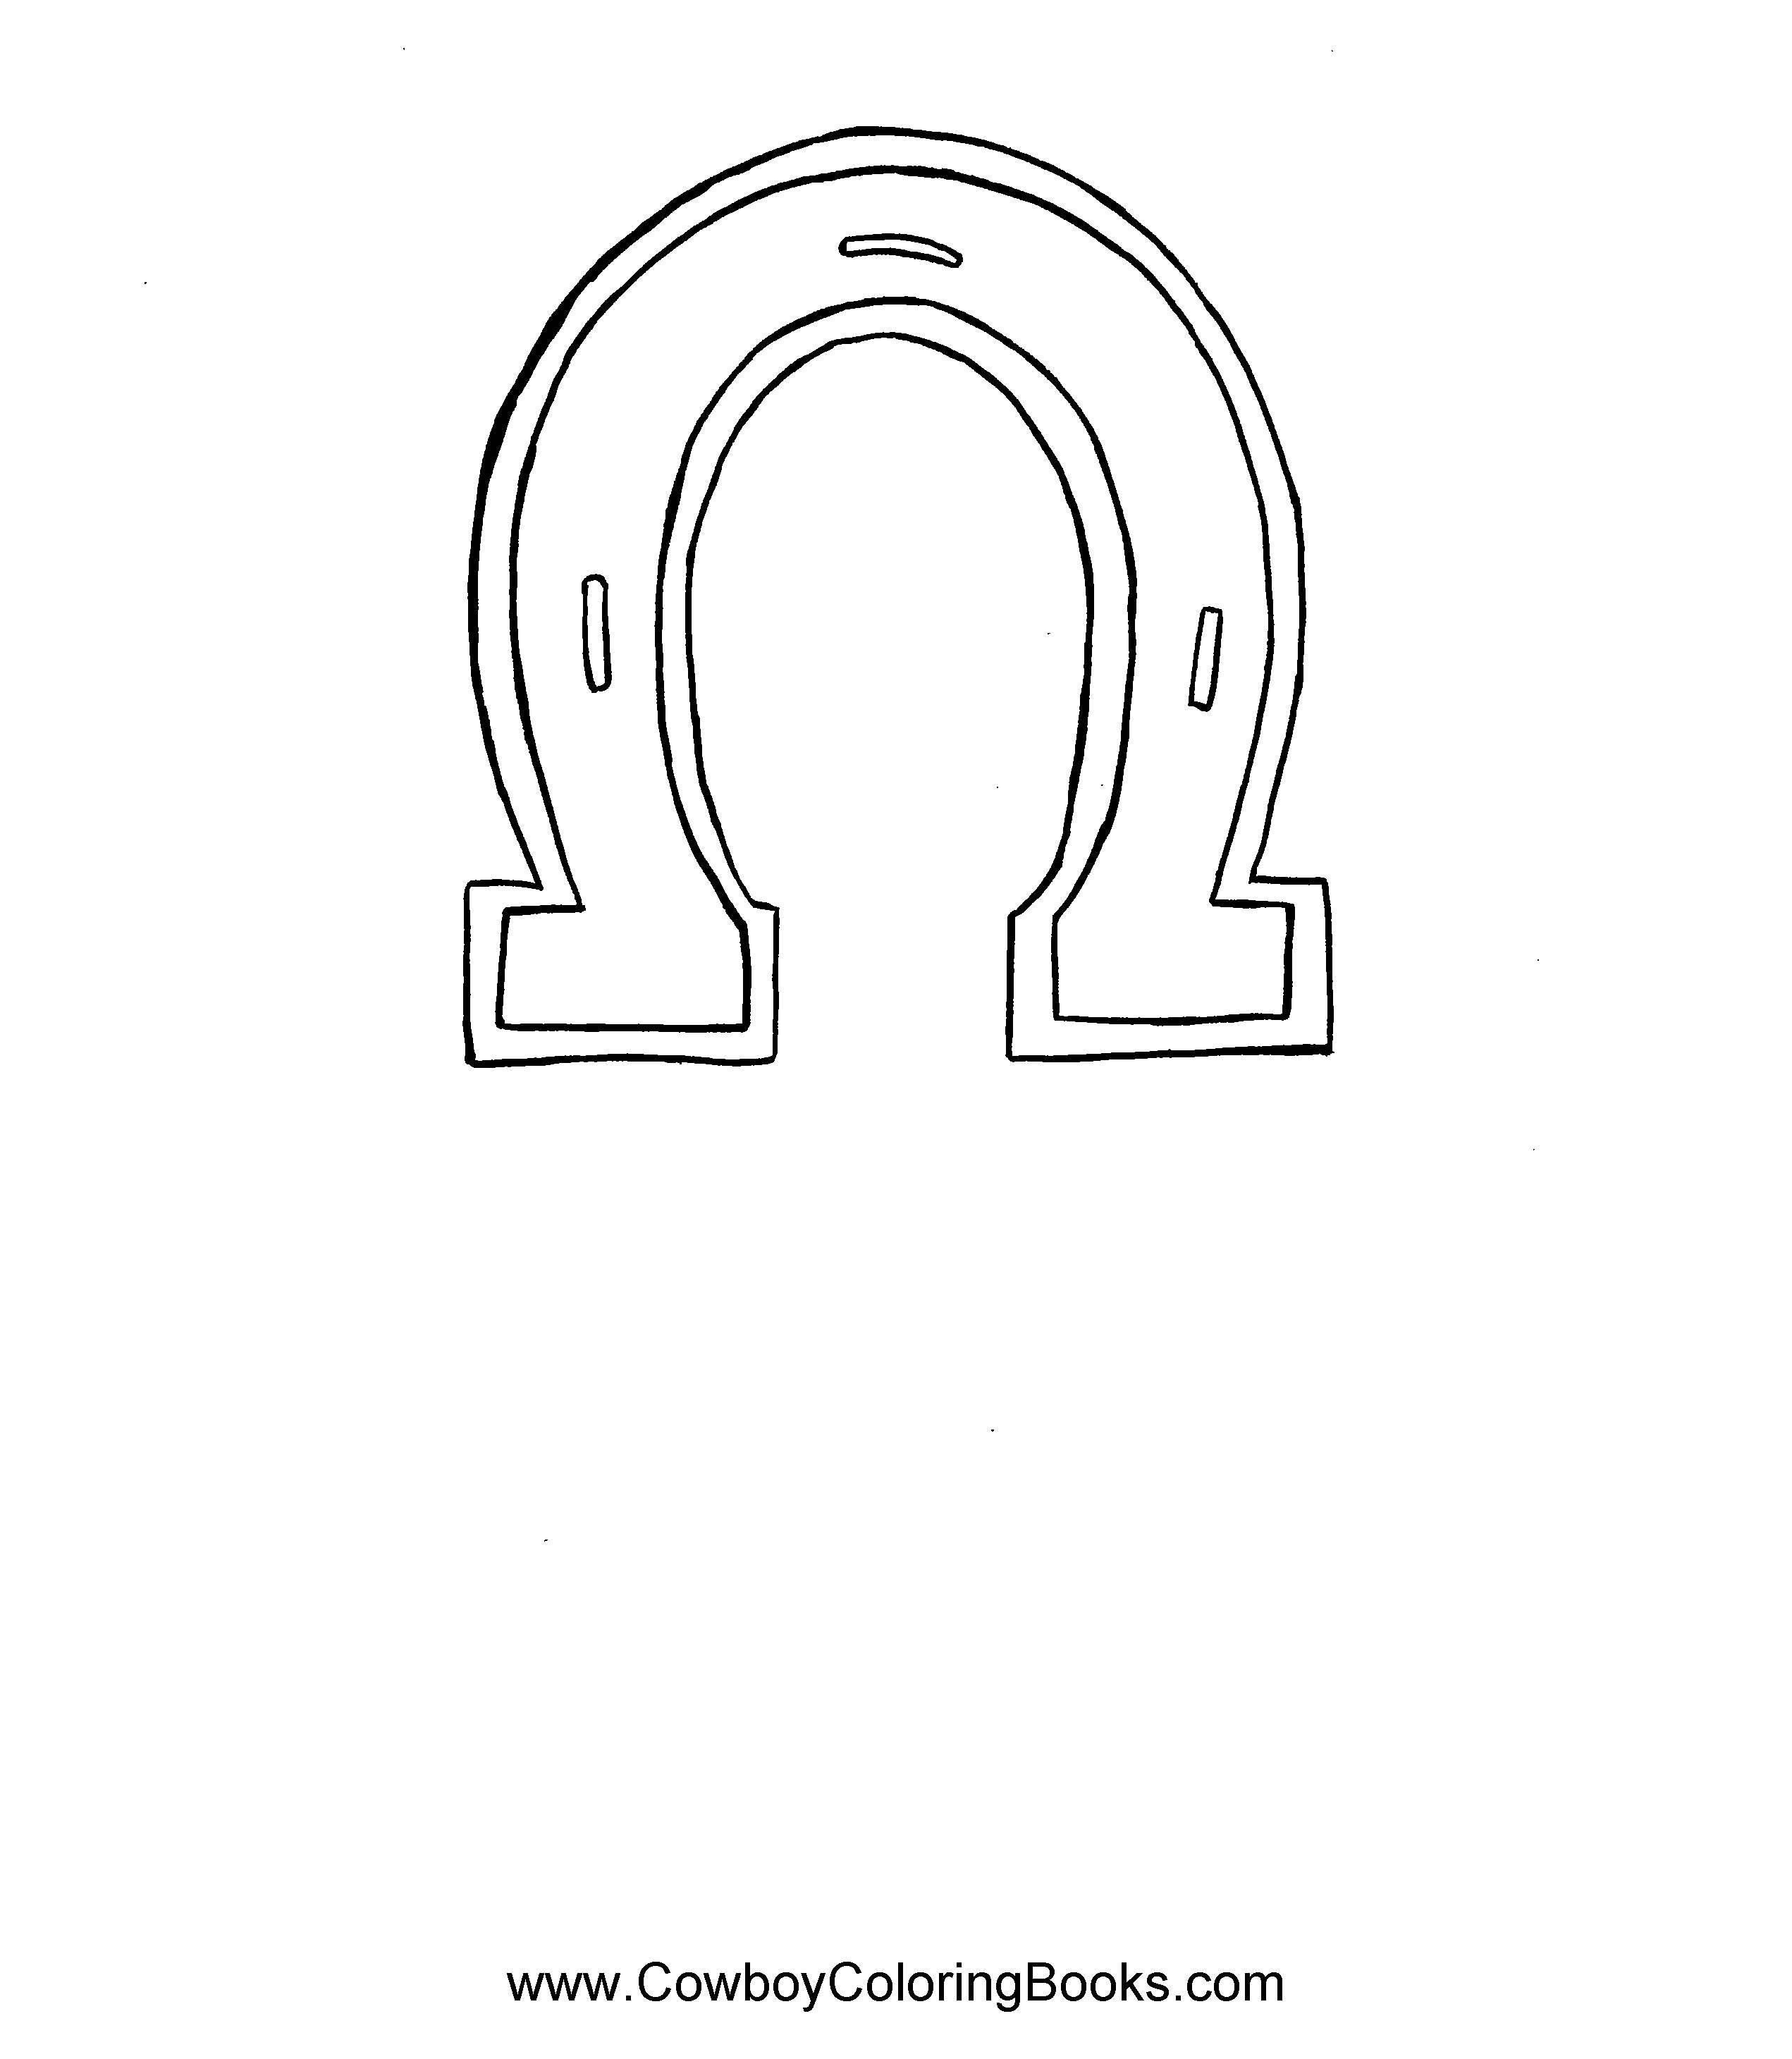 Horse Shoe Coloring Pageuse For A Pattern Could Make This Out Of Cardboard And Do The Foil On It Like In My Other Pin